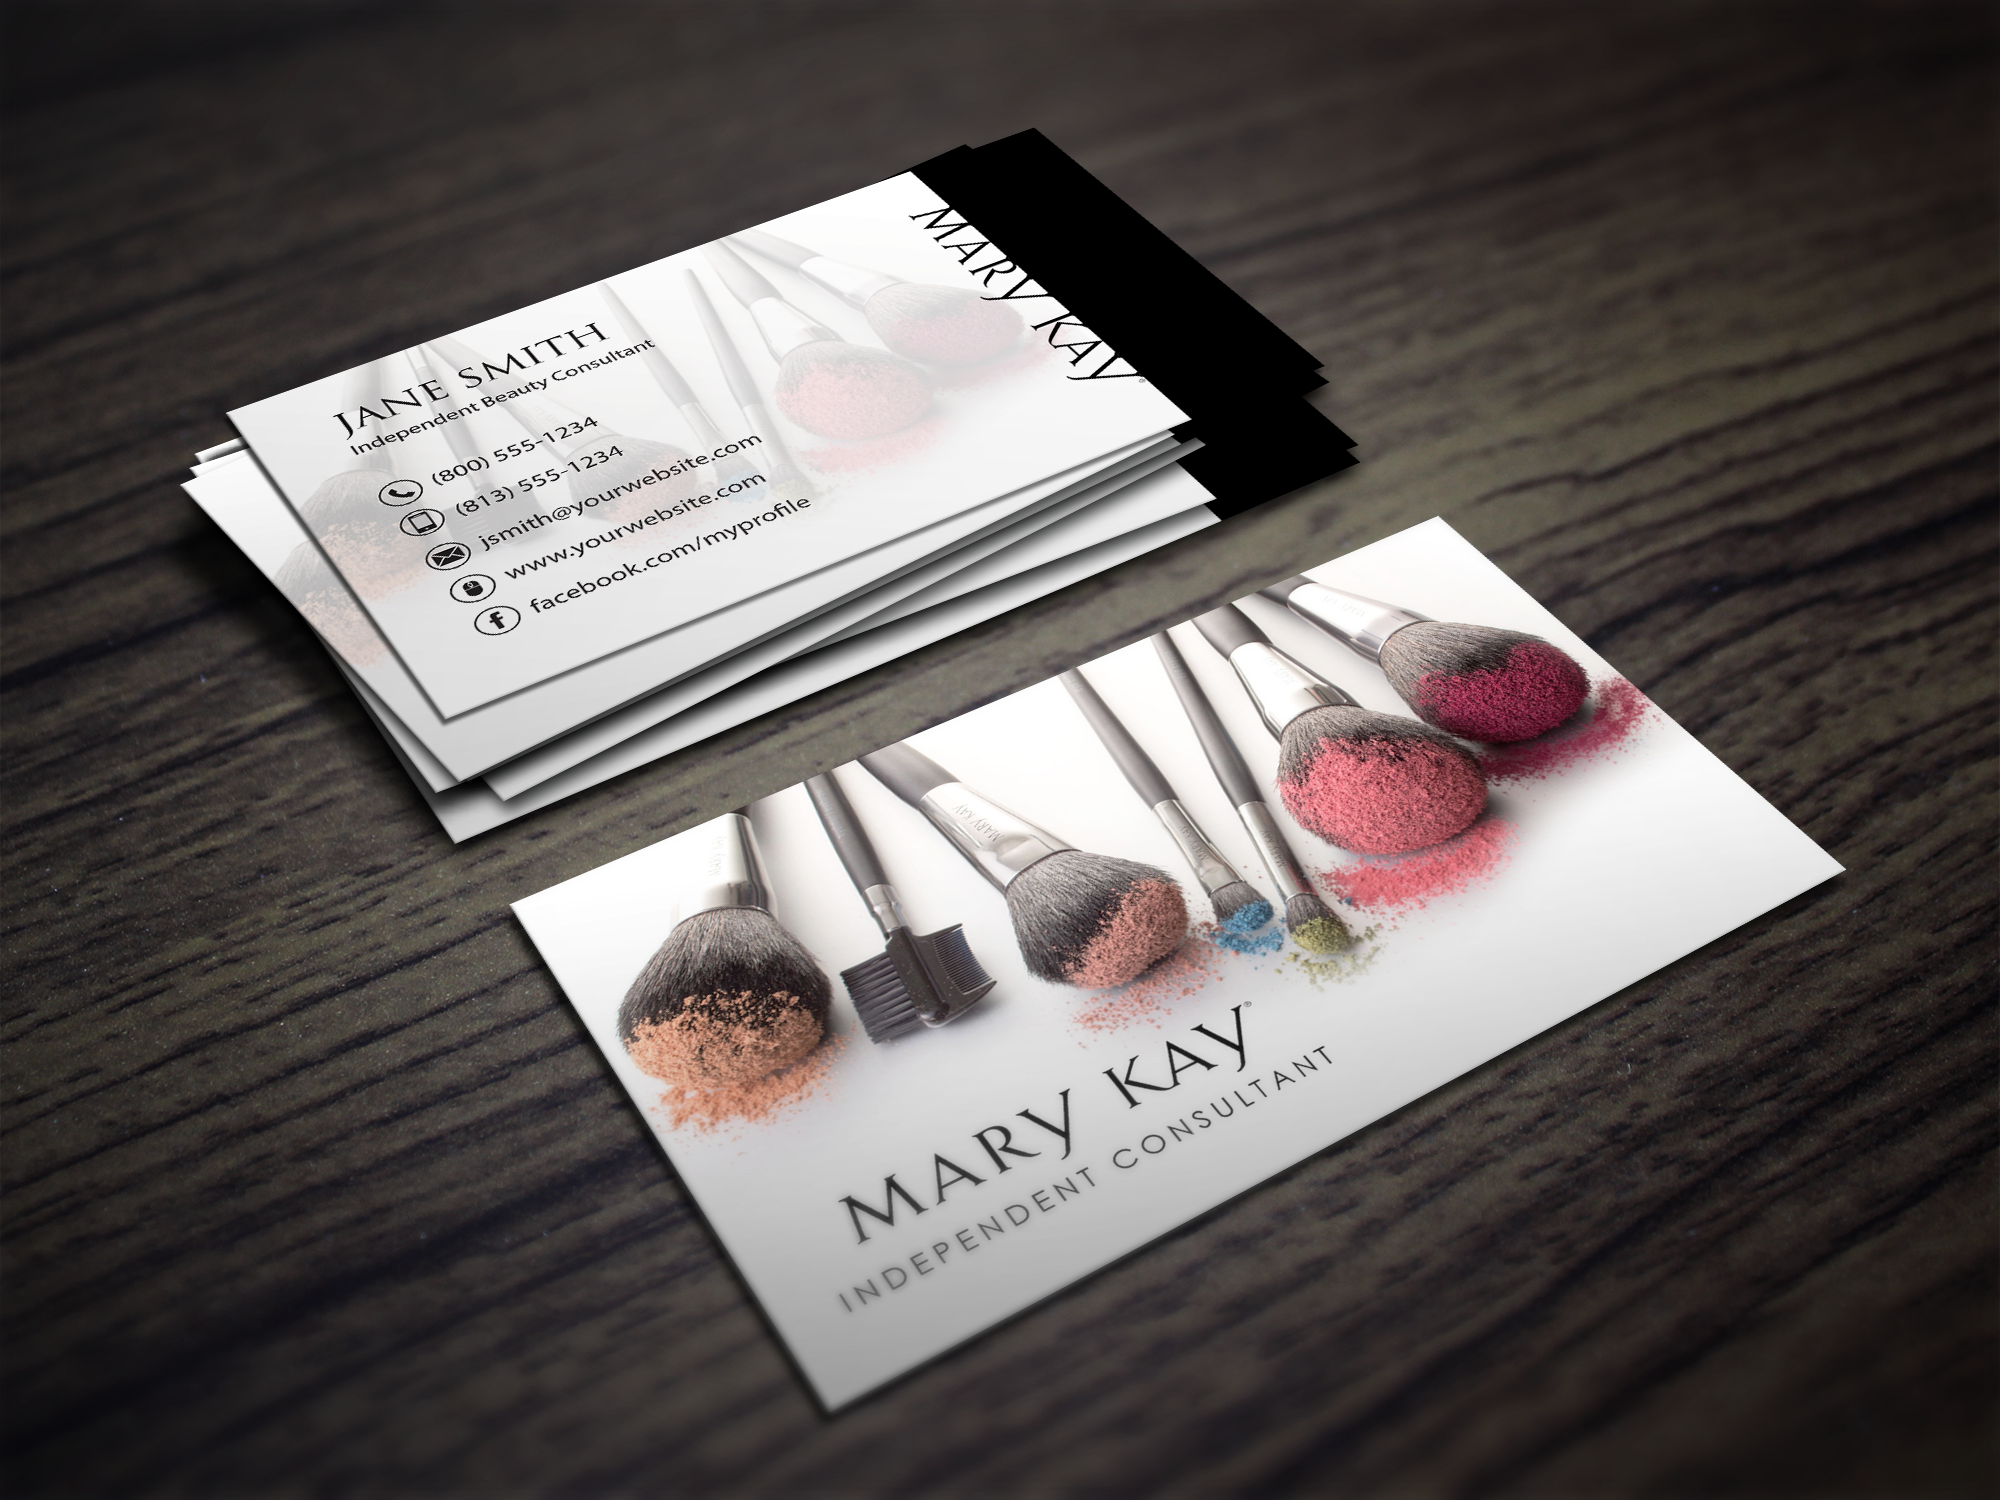 Makeup business card design for a Mary Kay rep expanding